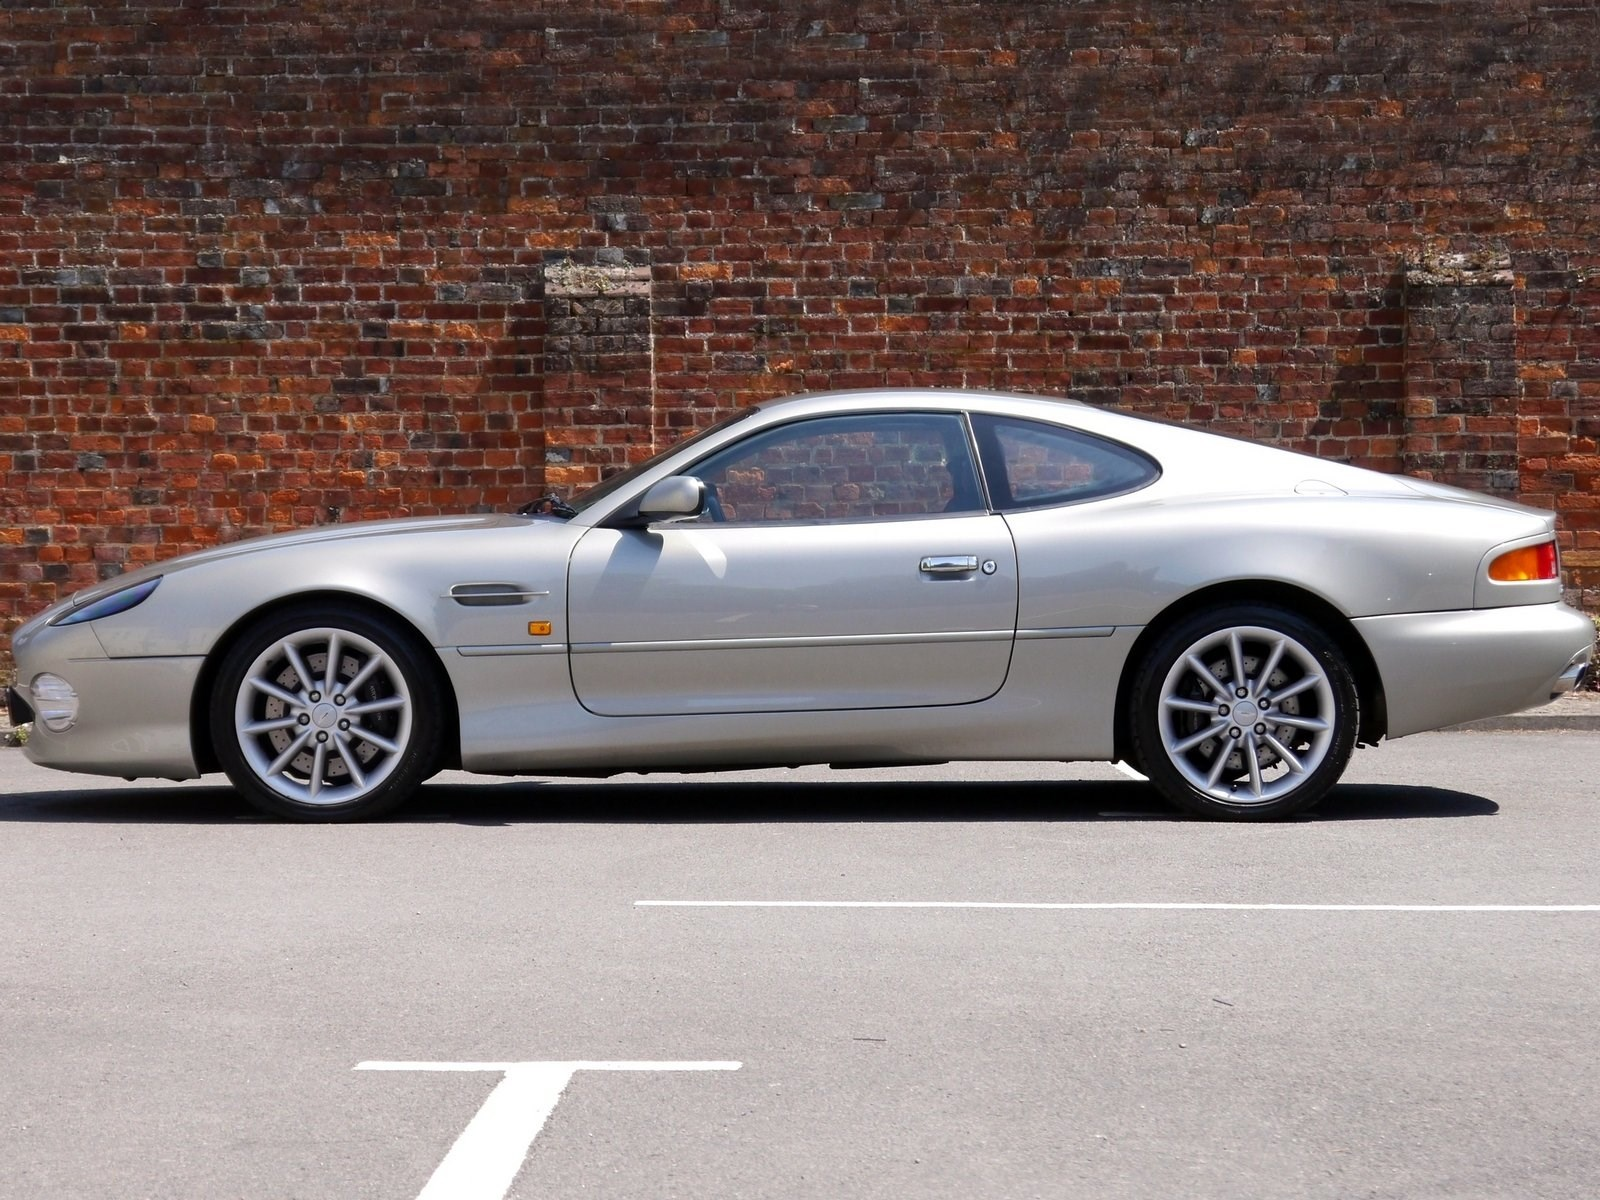 aston martin db7 vantage 6.0 v12 touchtronic - rare colour for sale